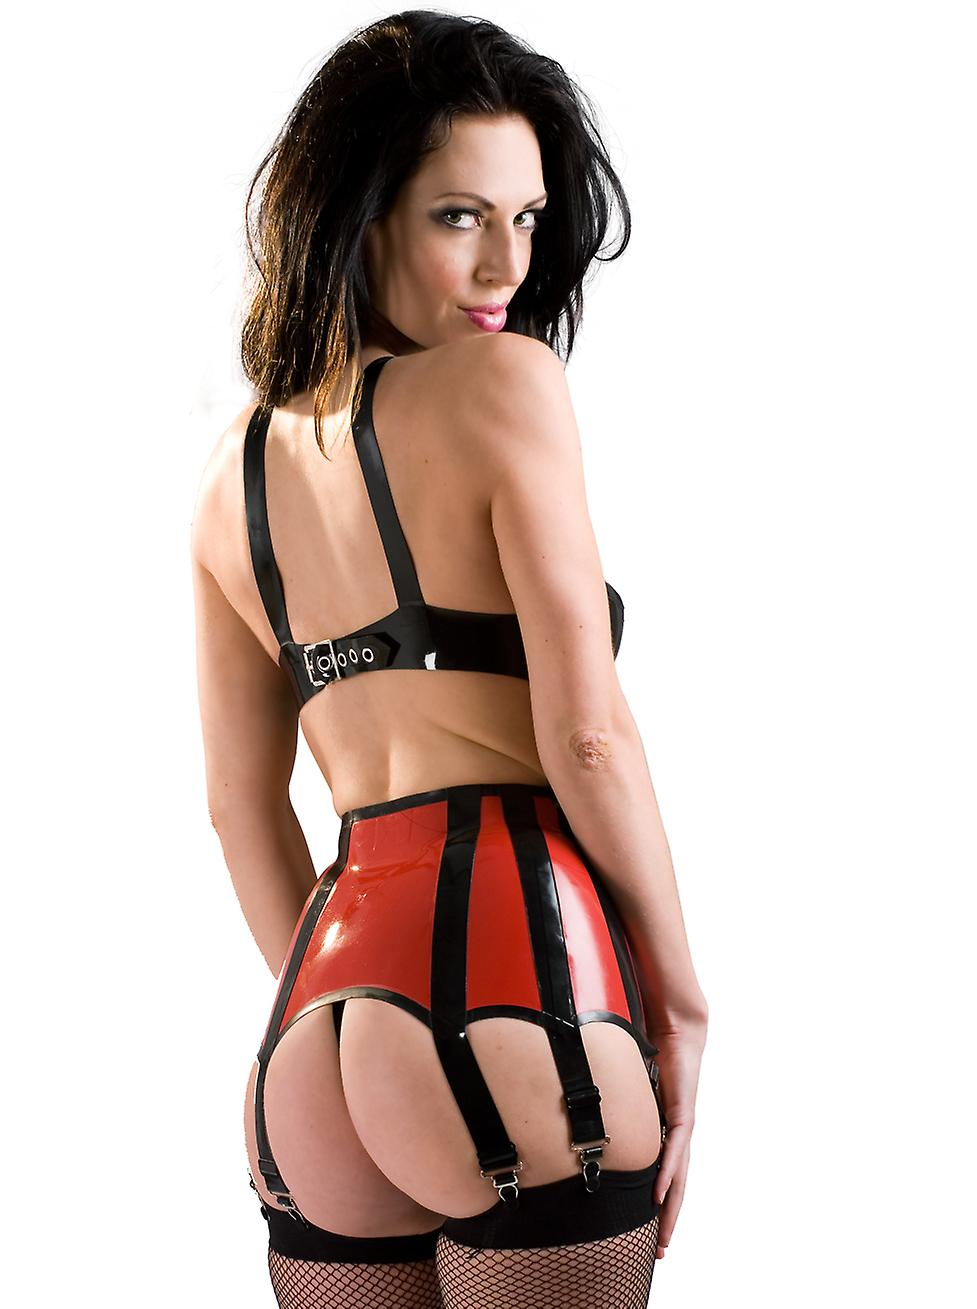 Skin Two Clothing Women's Kinky Suspender in Rubber Black & Red